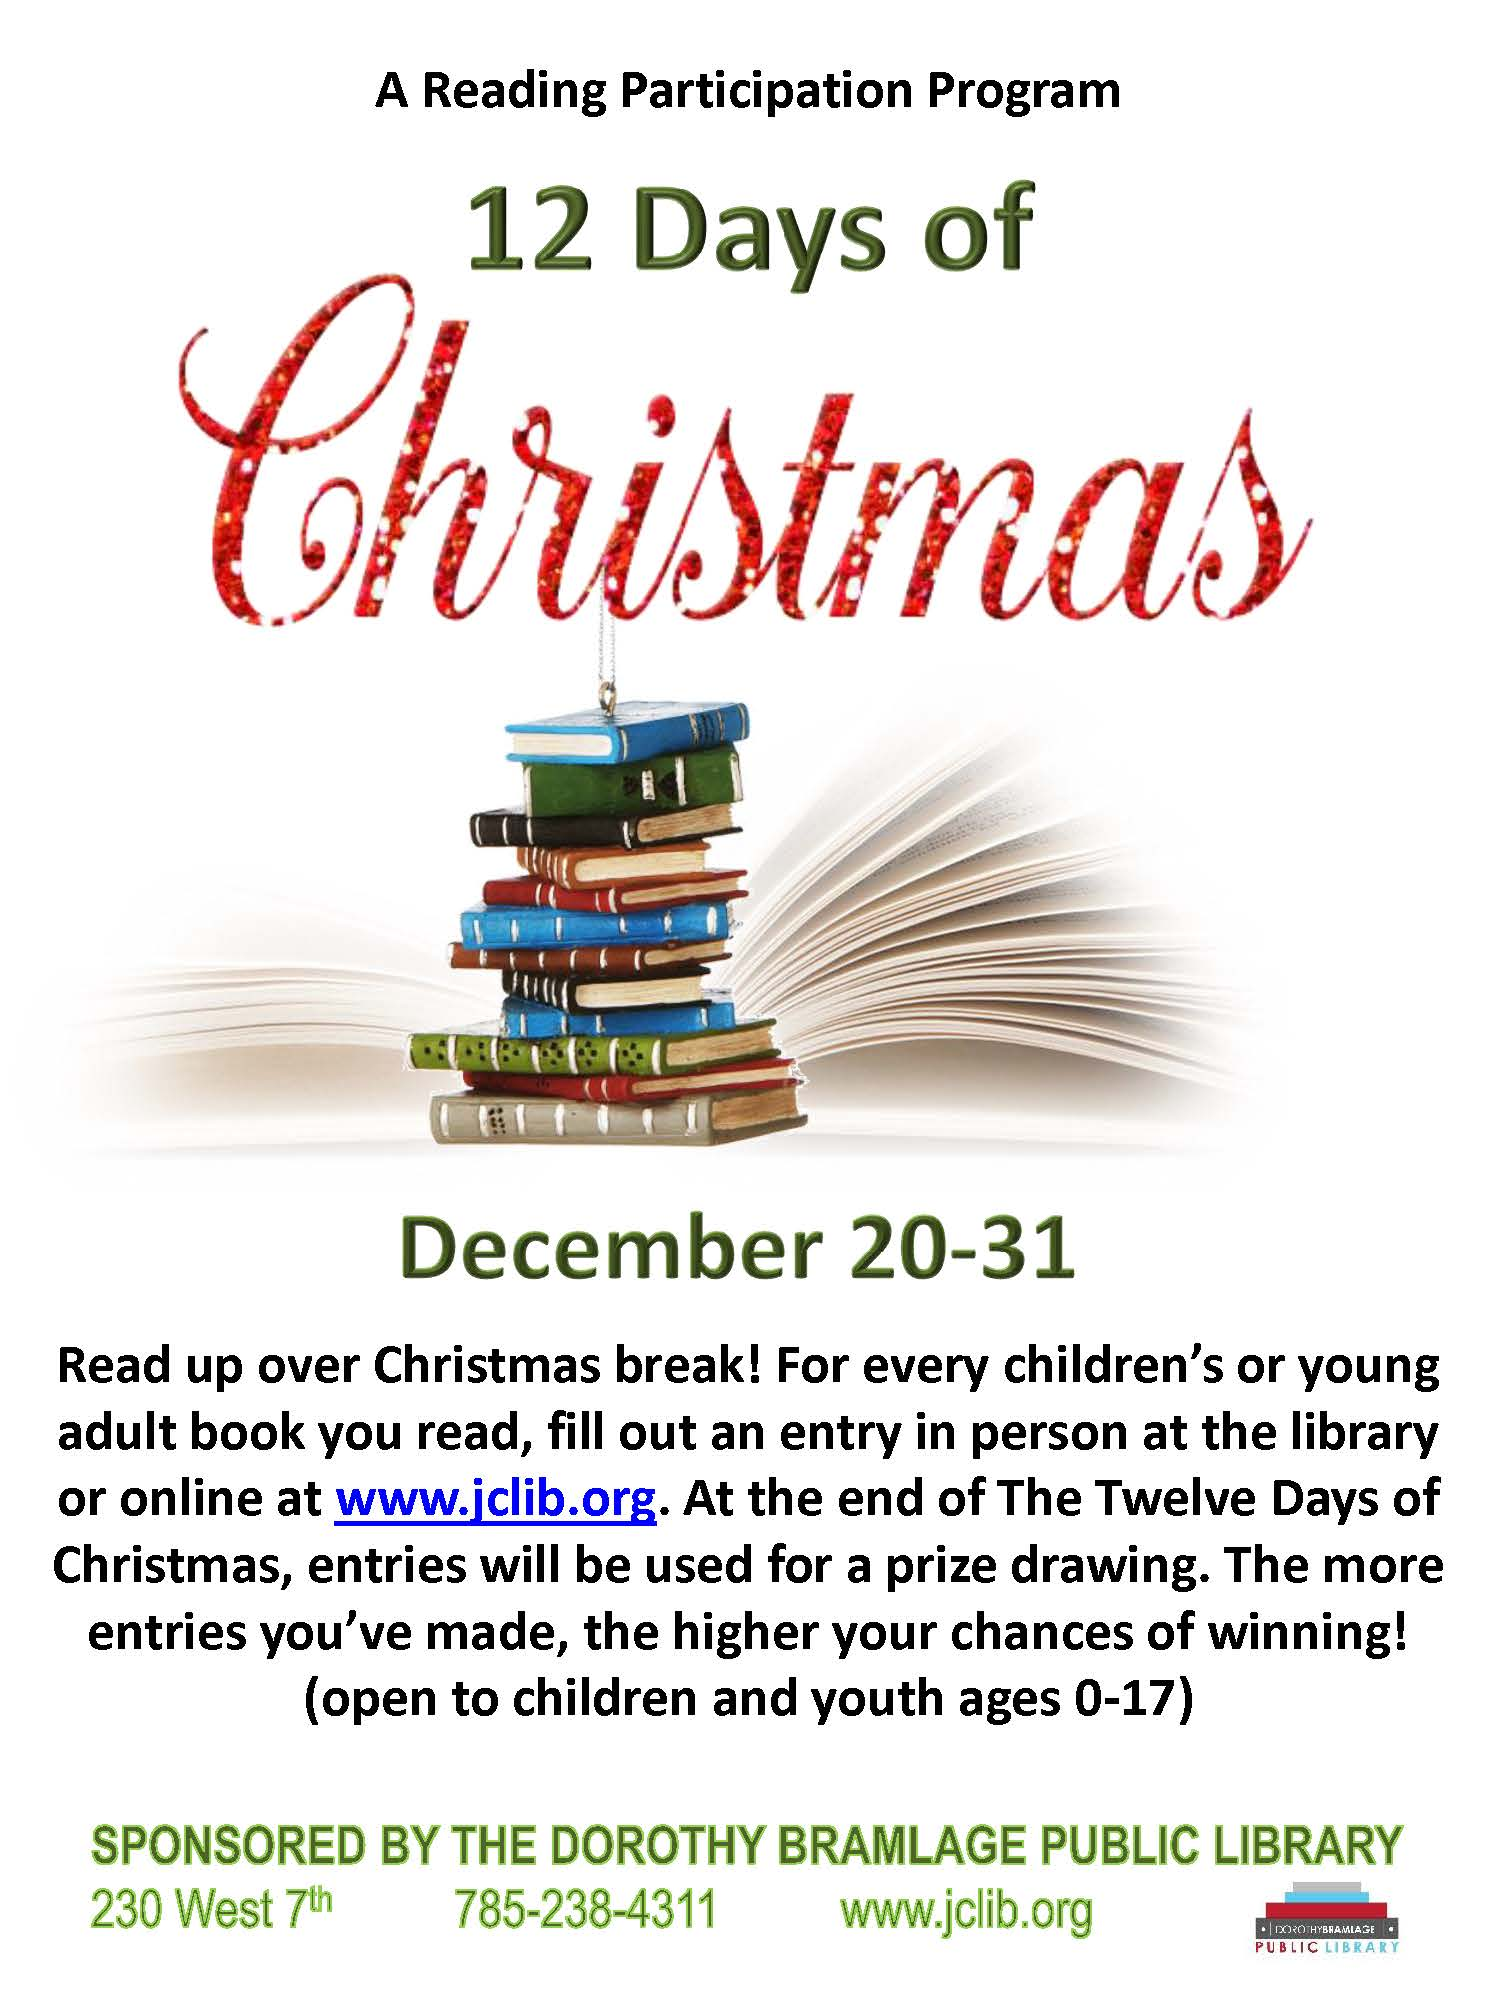 Flyer for Reading Participation Program: 12 Days of Christmas. All information is above.